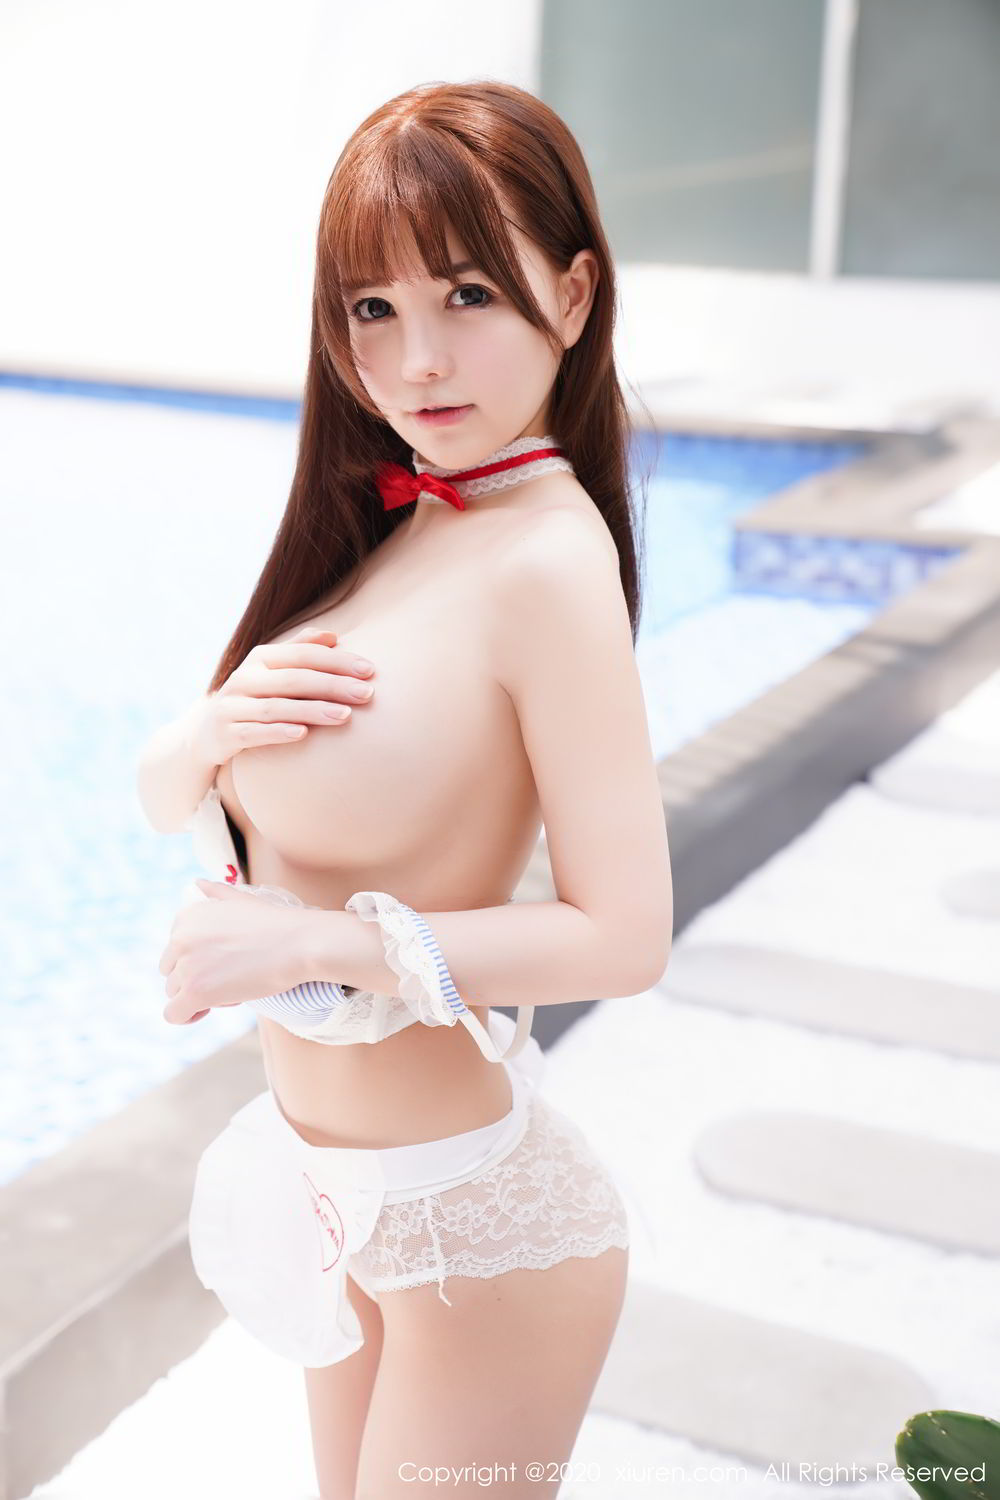 [XiuRen] Vol.2193 Uu Jiang 81P, Baby Face Big Boobs, Cute, UU Jiang, Xiuren